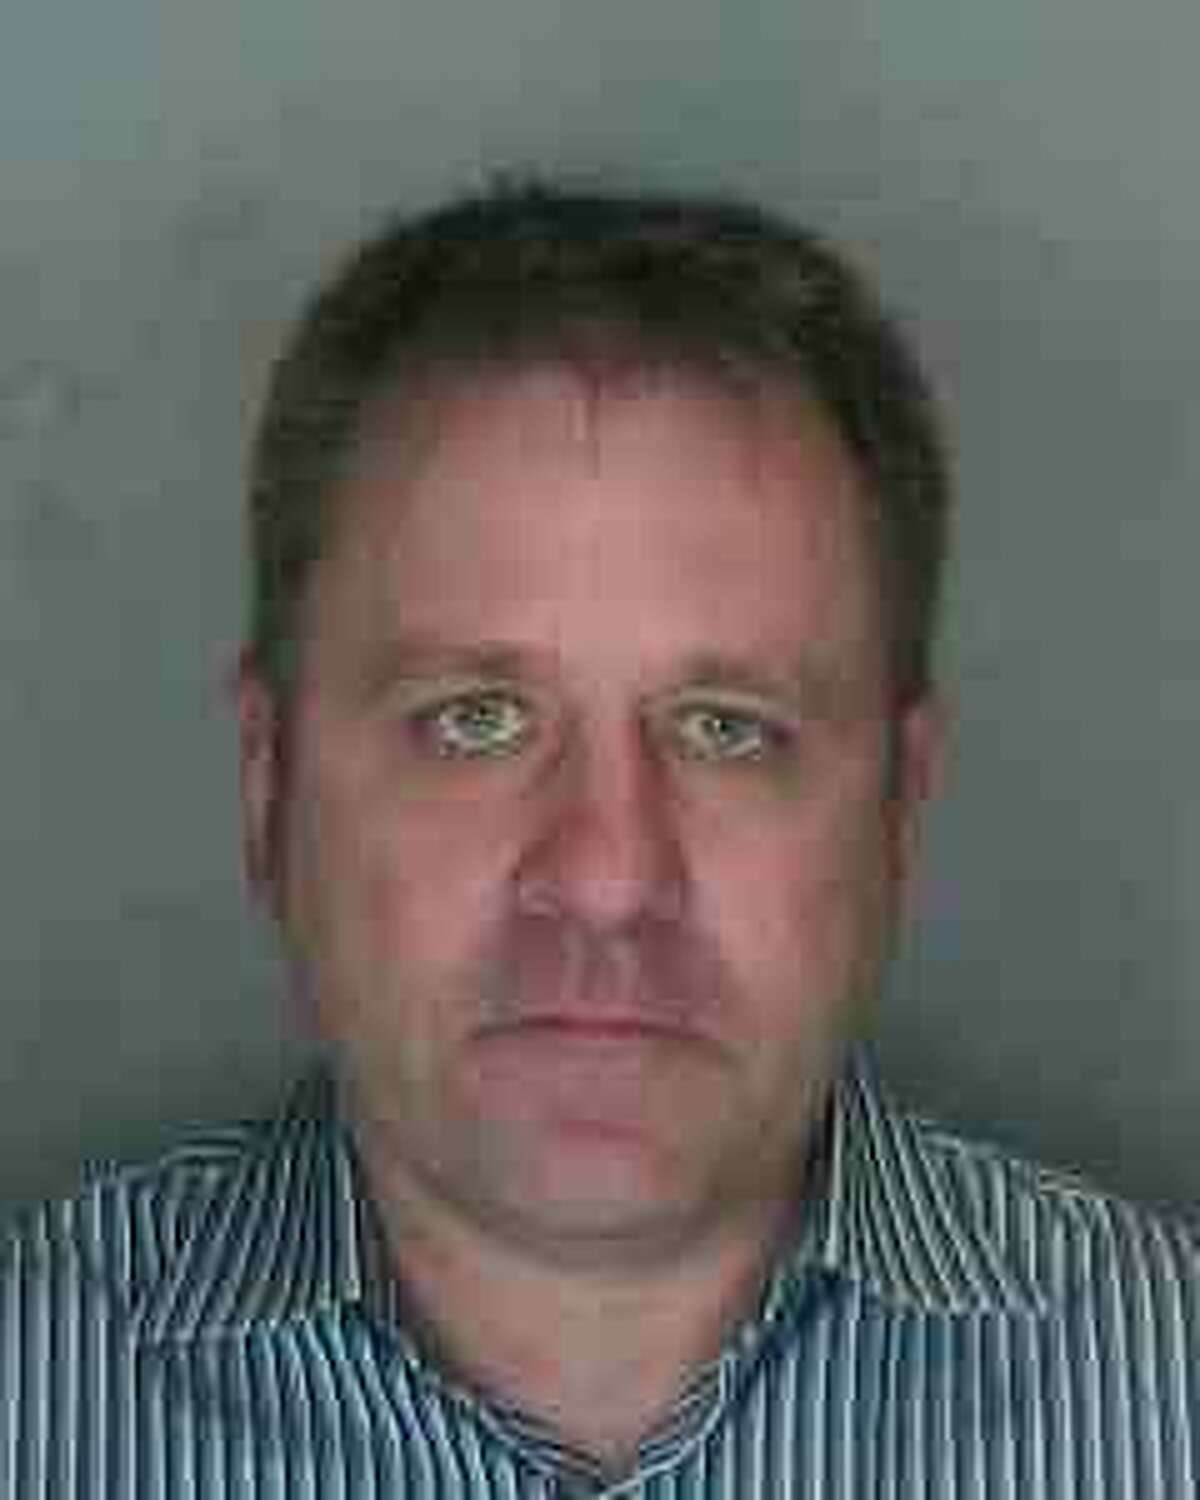 Paul J. Bourdeau, a 45-year-old registered nurse from Schenectady was accused of using a surveillance camera to record women using an employee hospital at Ellis Hospital. (Schenectady Police Department)